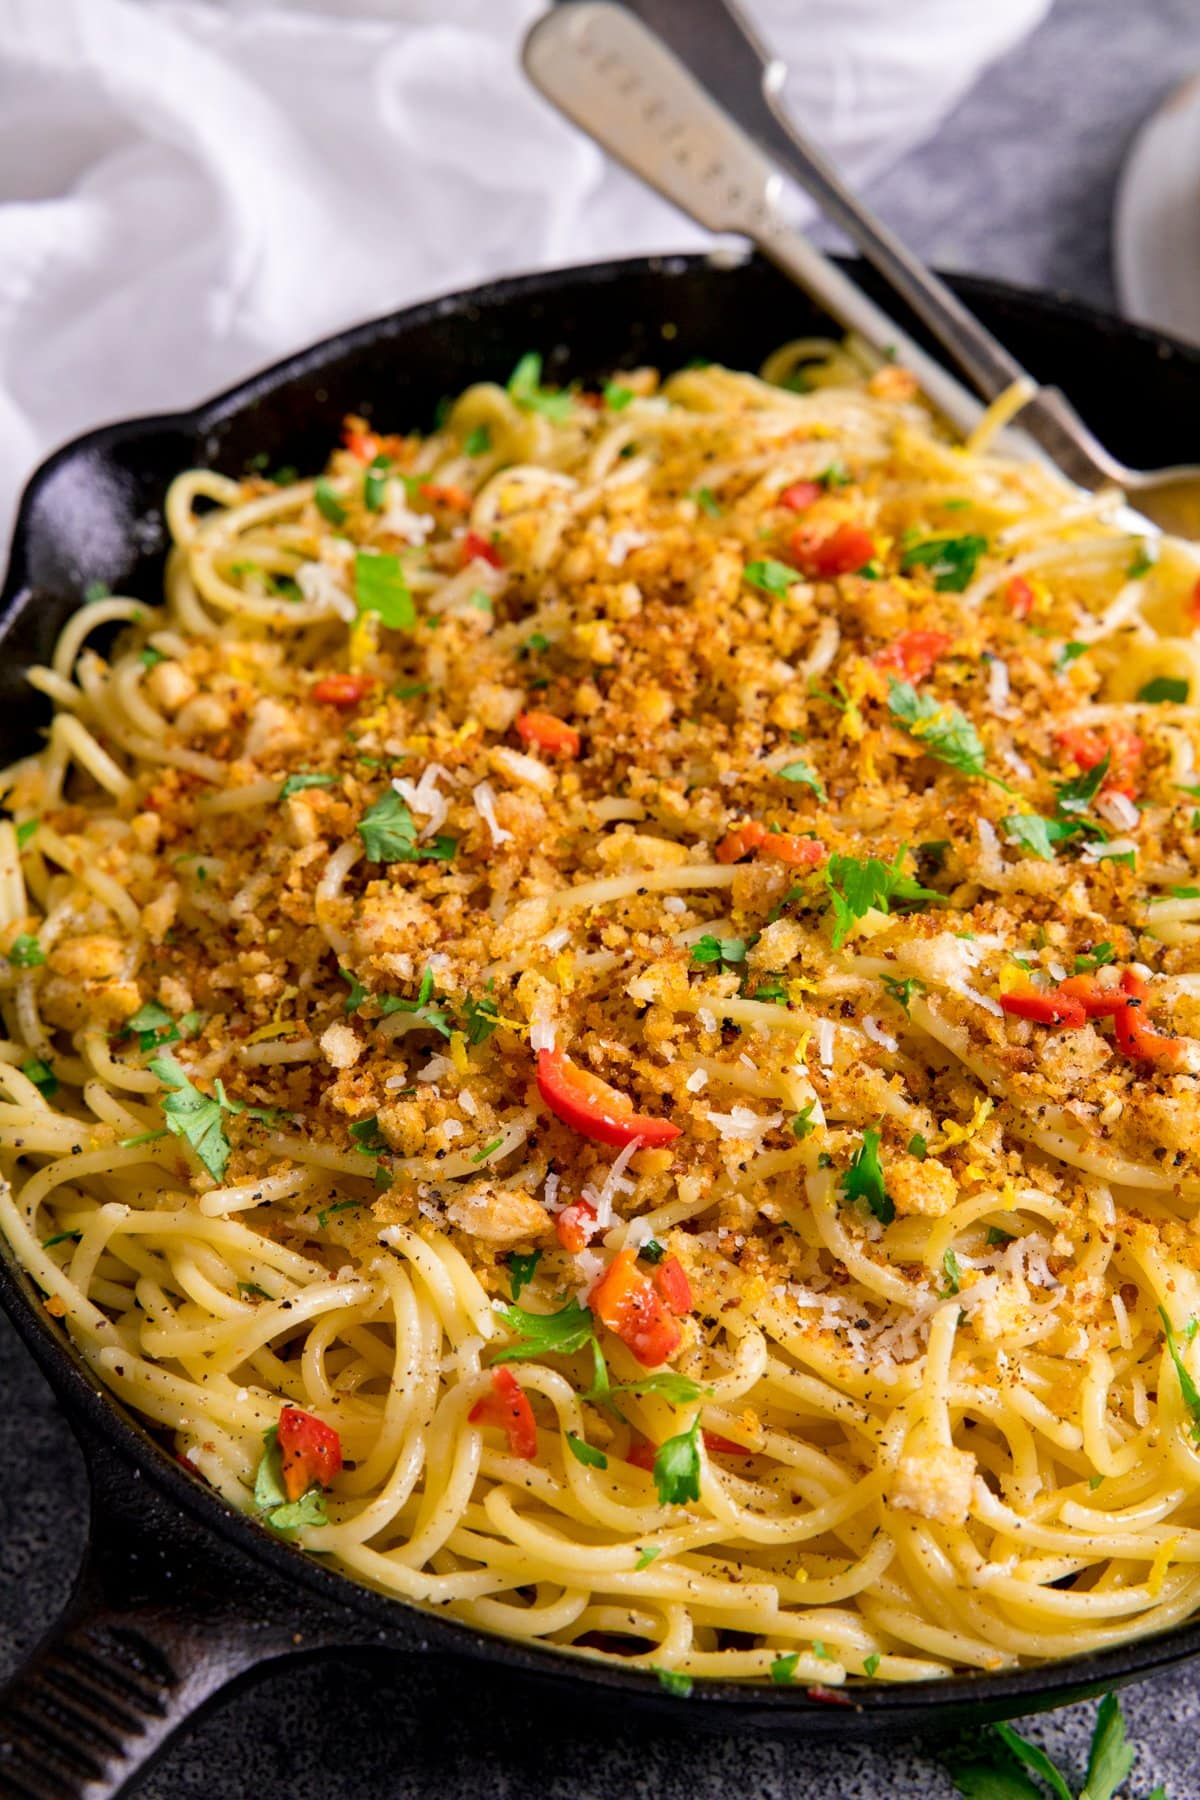 Black pan filled with spaghetti this is mixed with garlic breadcrumbs, chilli and parmesan.